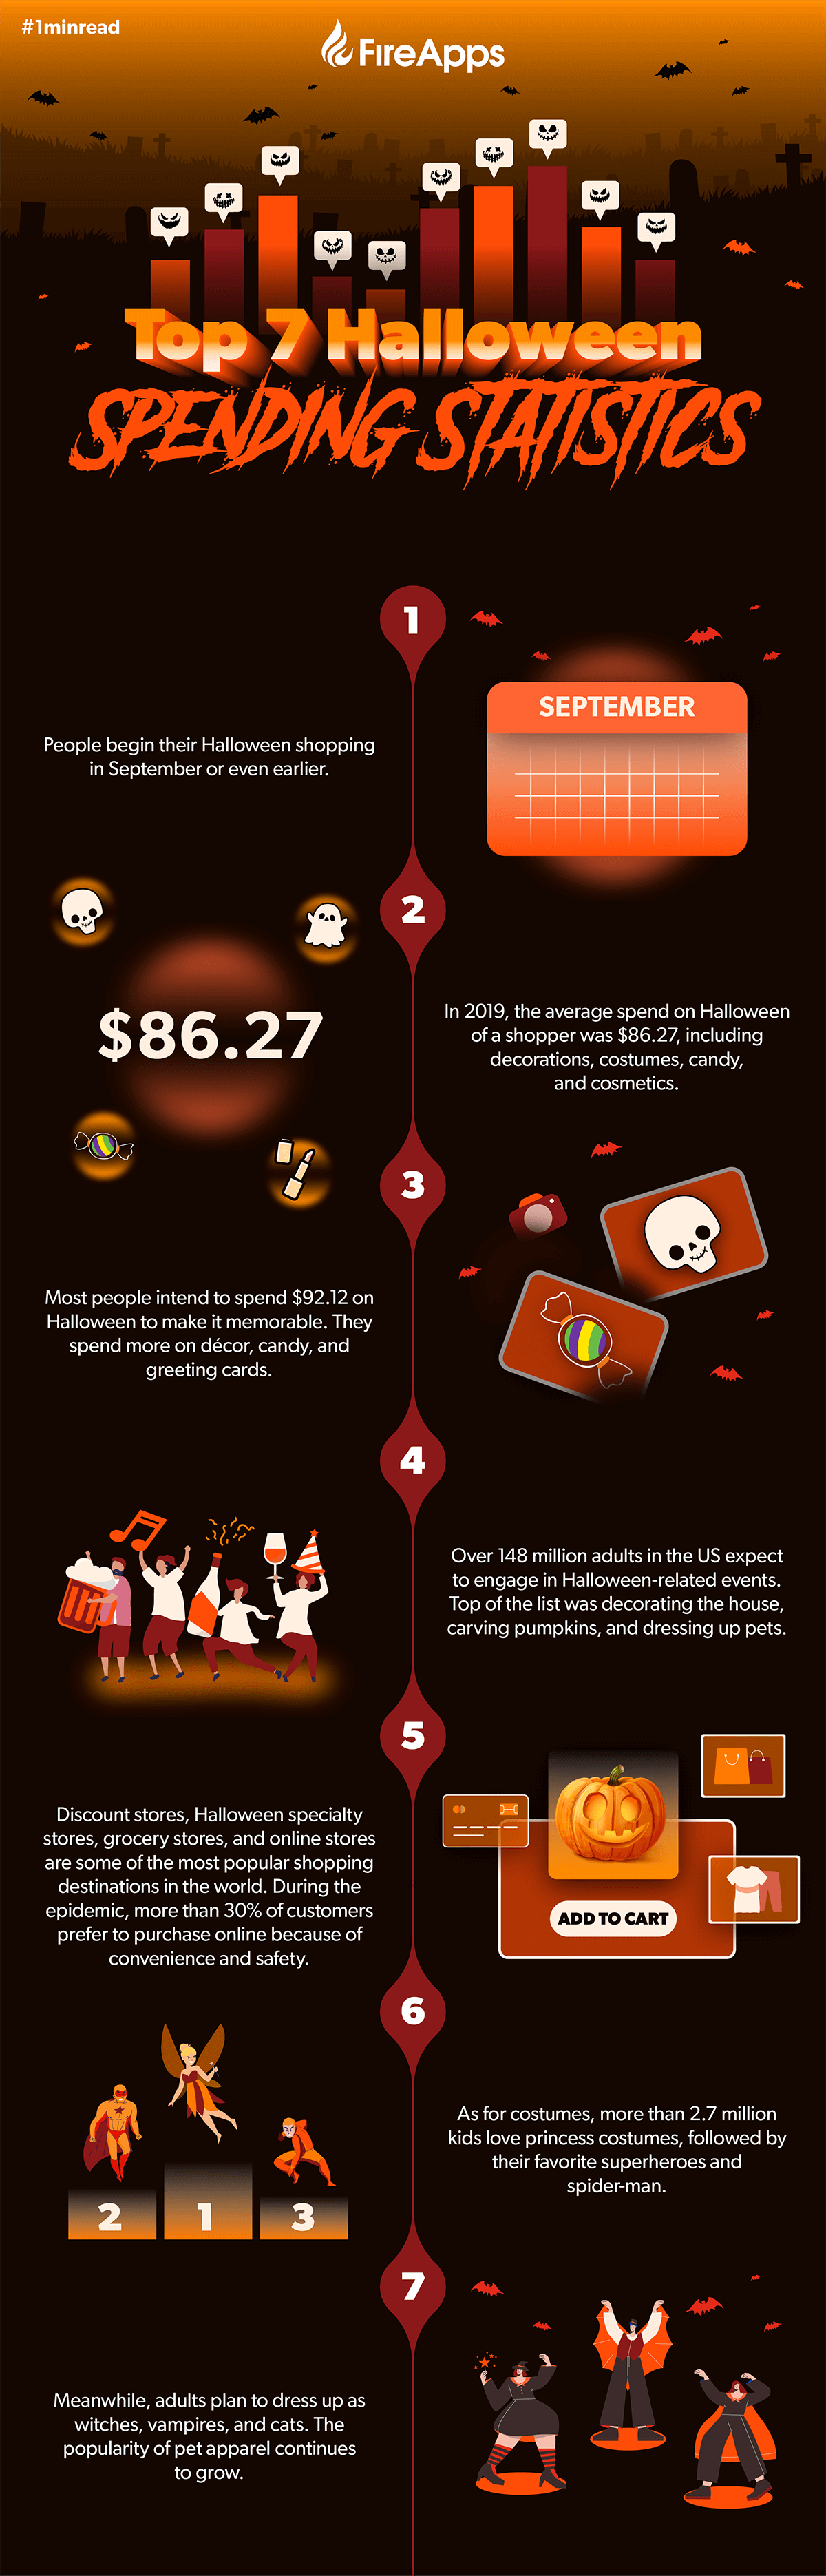 Infographic Top 7 Halloween Spending Statistics that sellers need to know